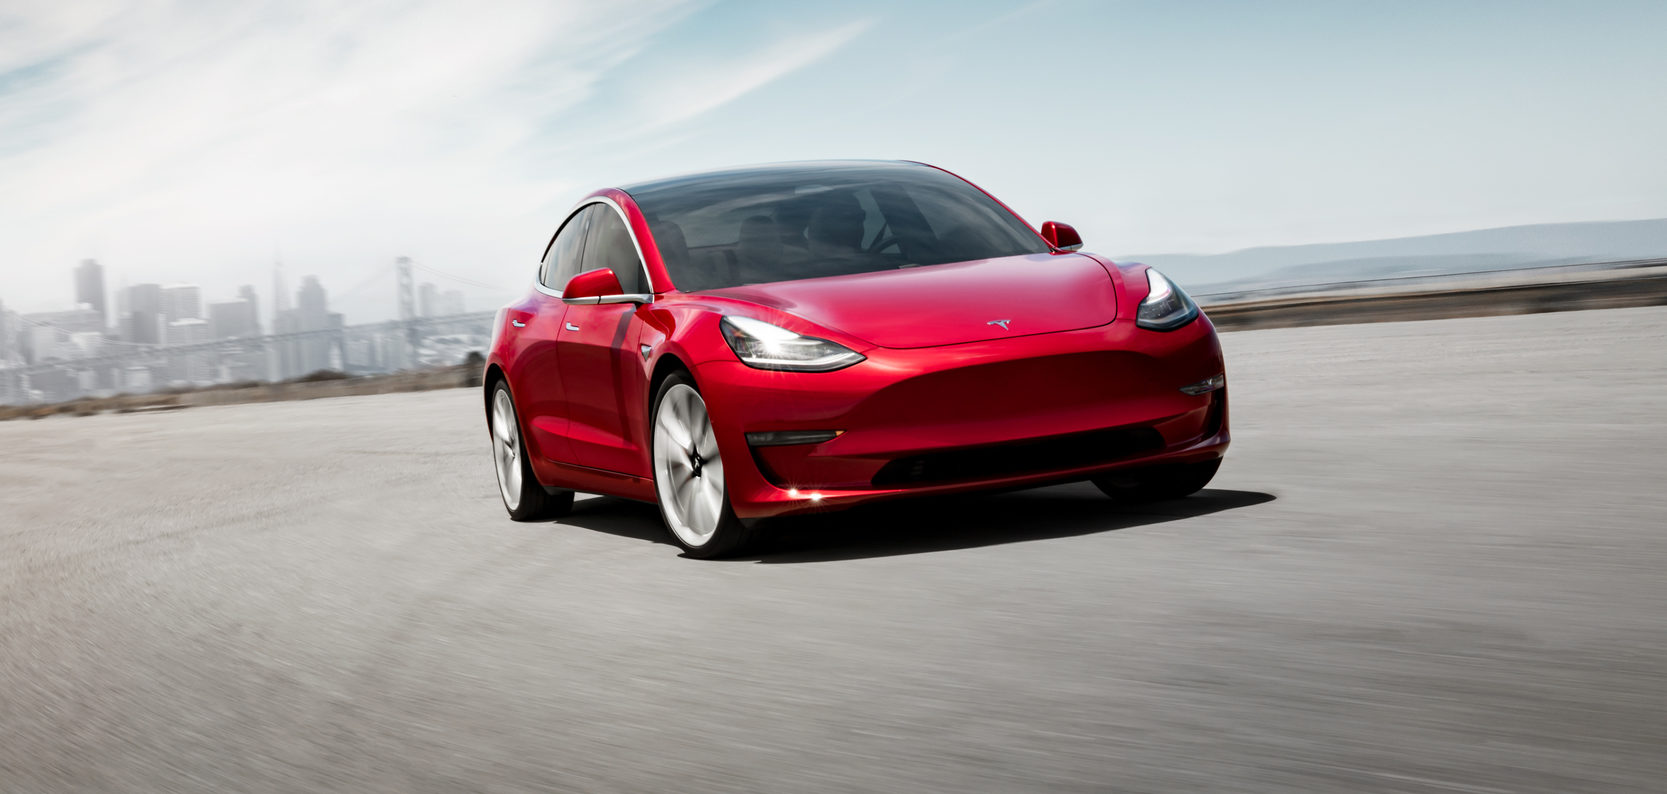 Sorry Jim Chanos, but the Tesla Model 3 is definitely not 'looking